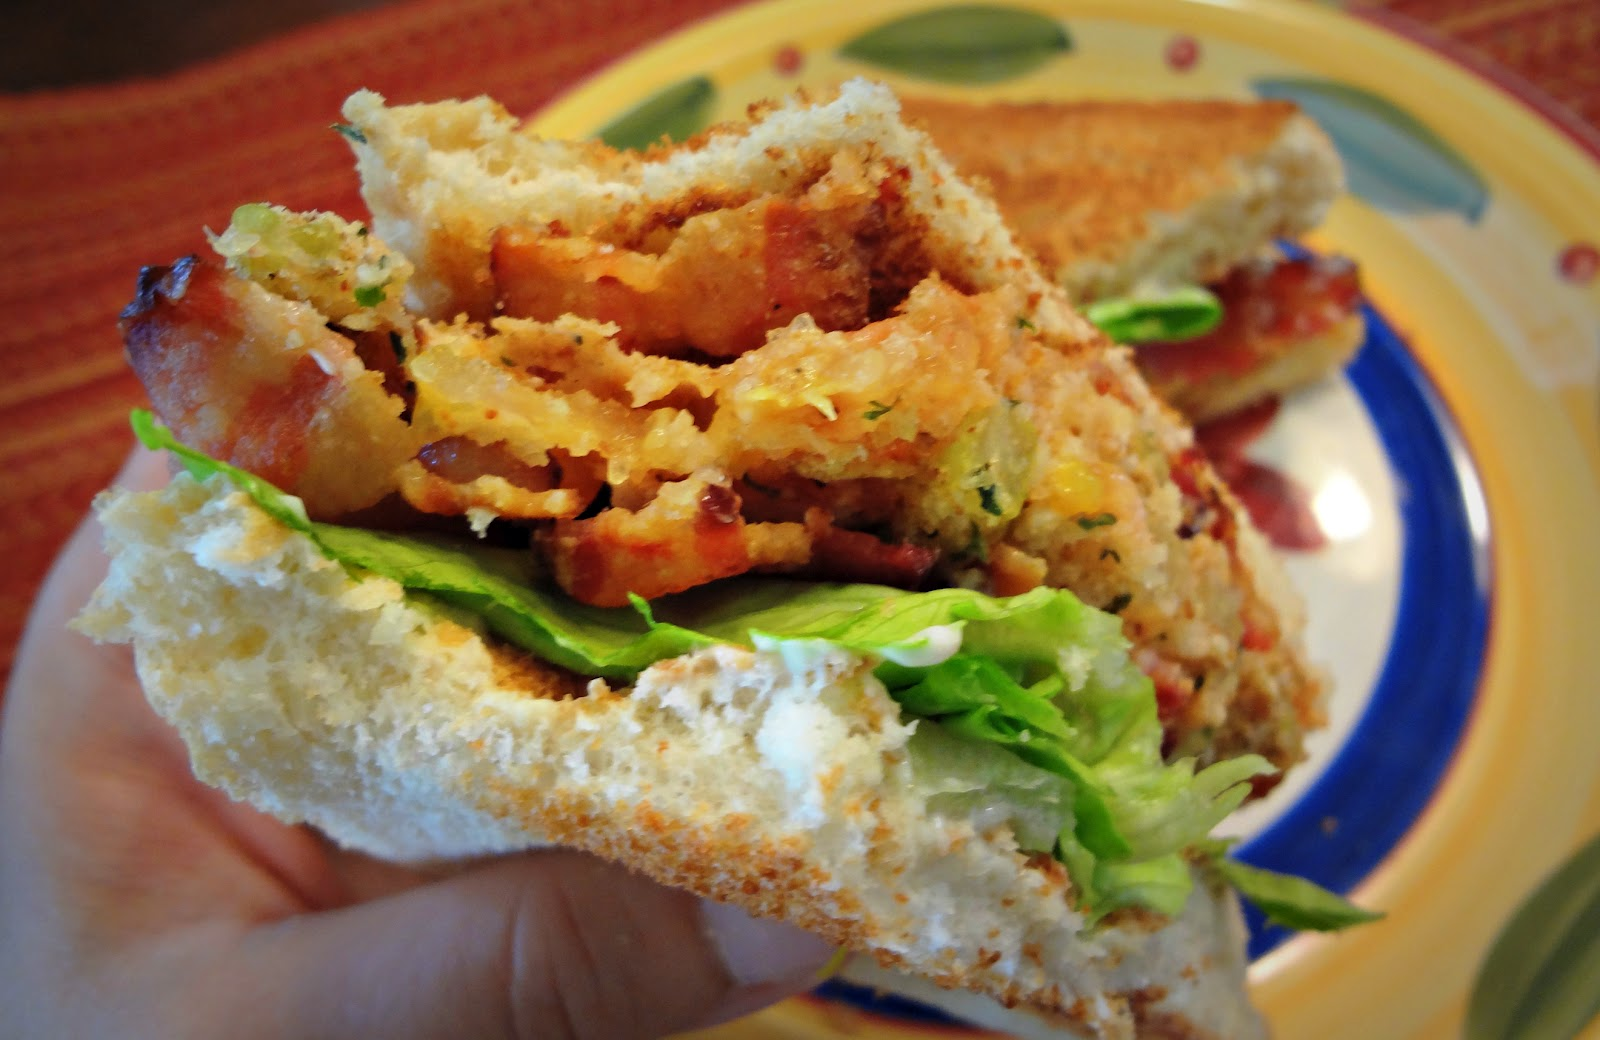 Attack of the Hungry Monster: BLT with Baked Green Tomatoes